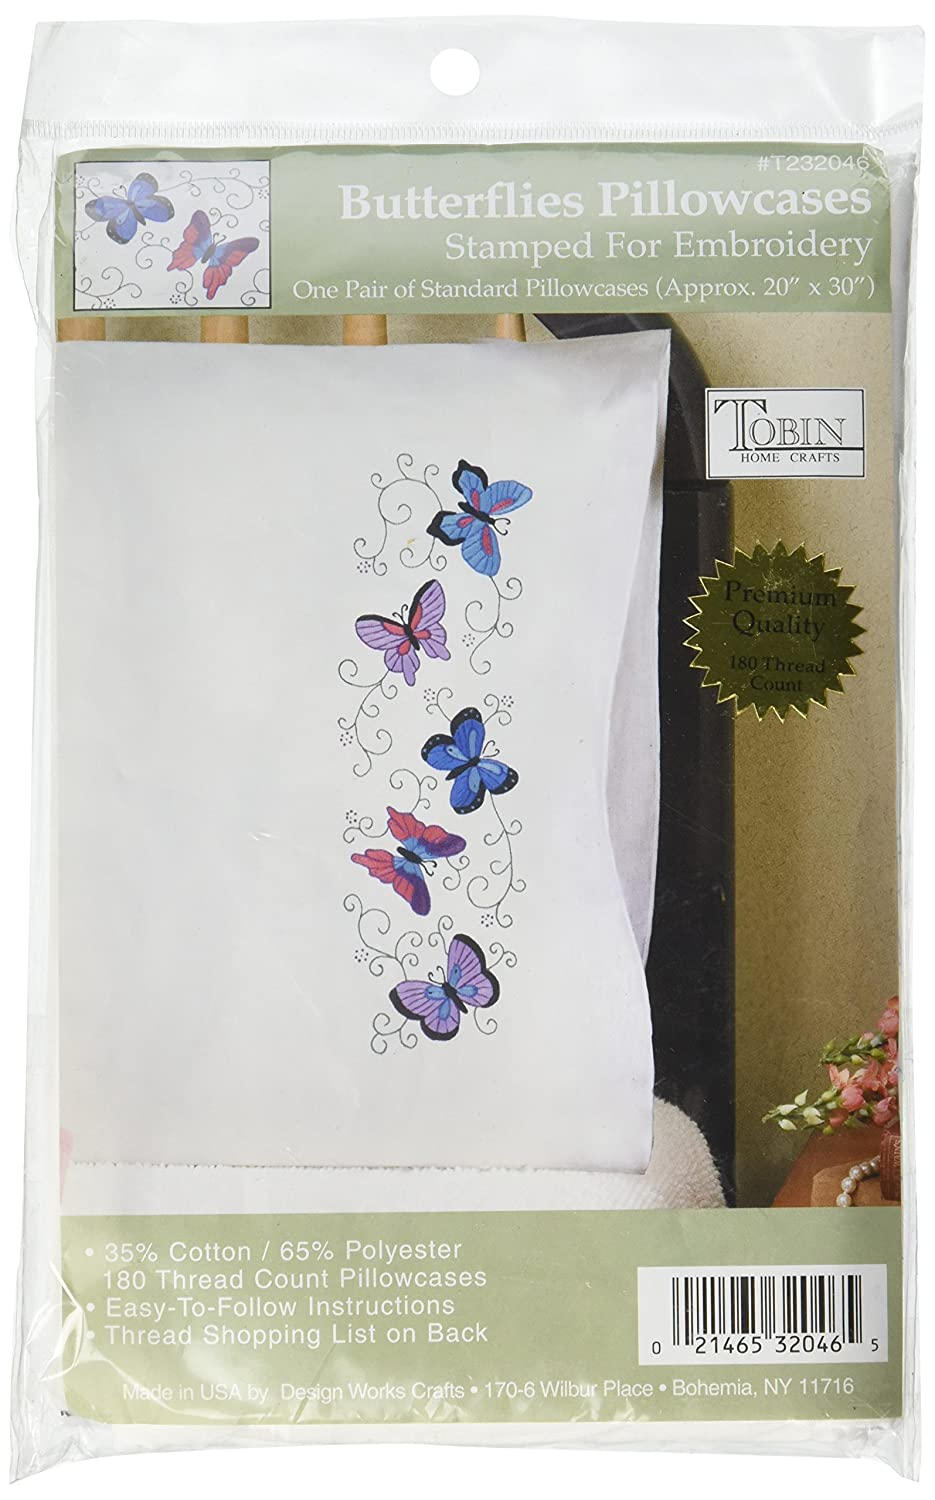 Tobin Stamped Pillowcase Pair Stamped Cross Stitch Kit for Embroidery, 20 by 30-Inch, Butterflies T232046